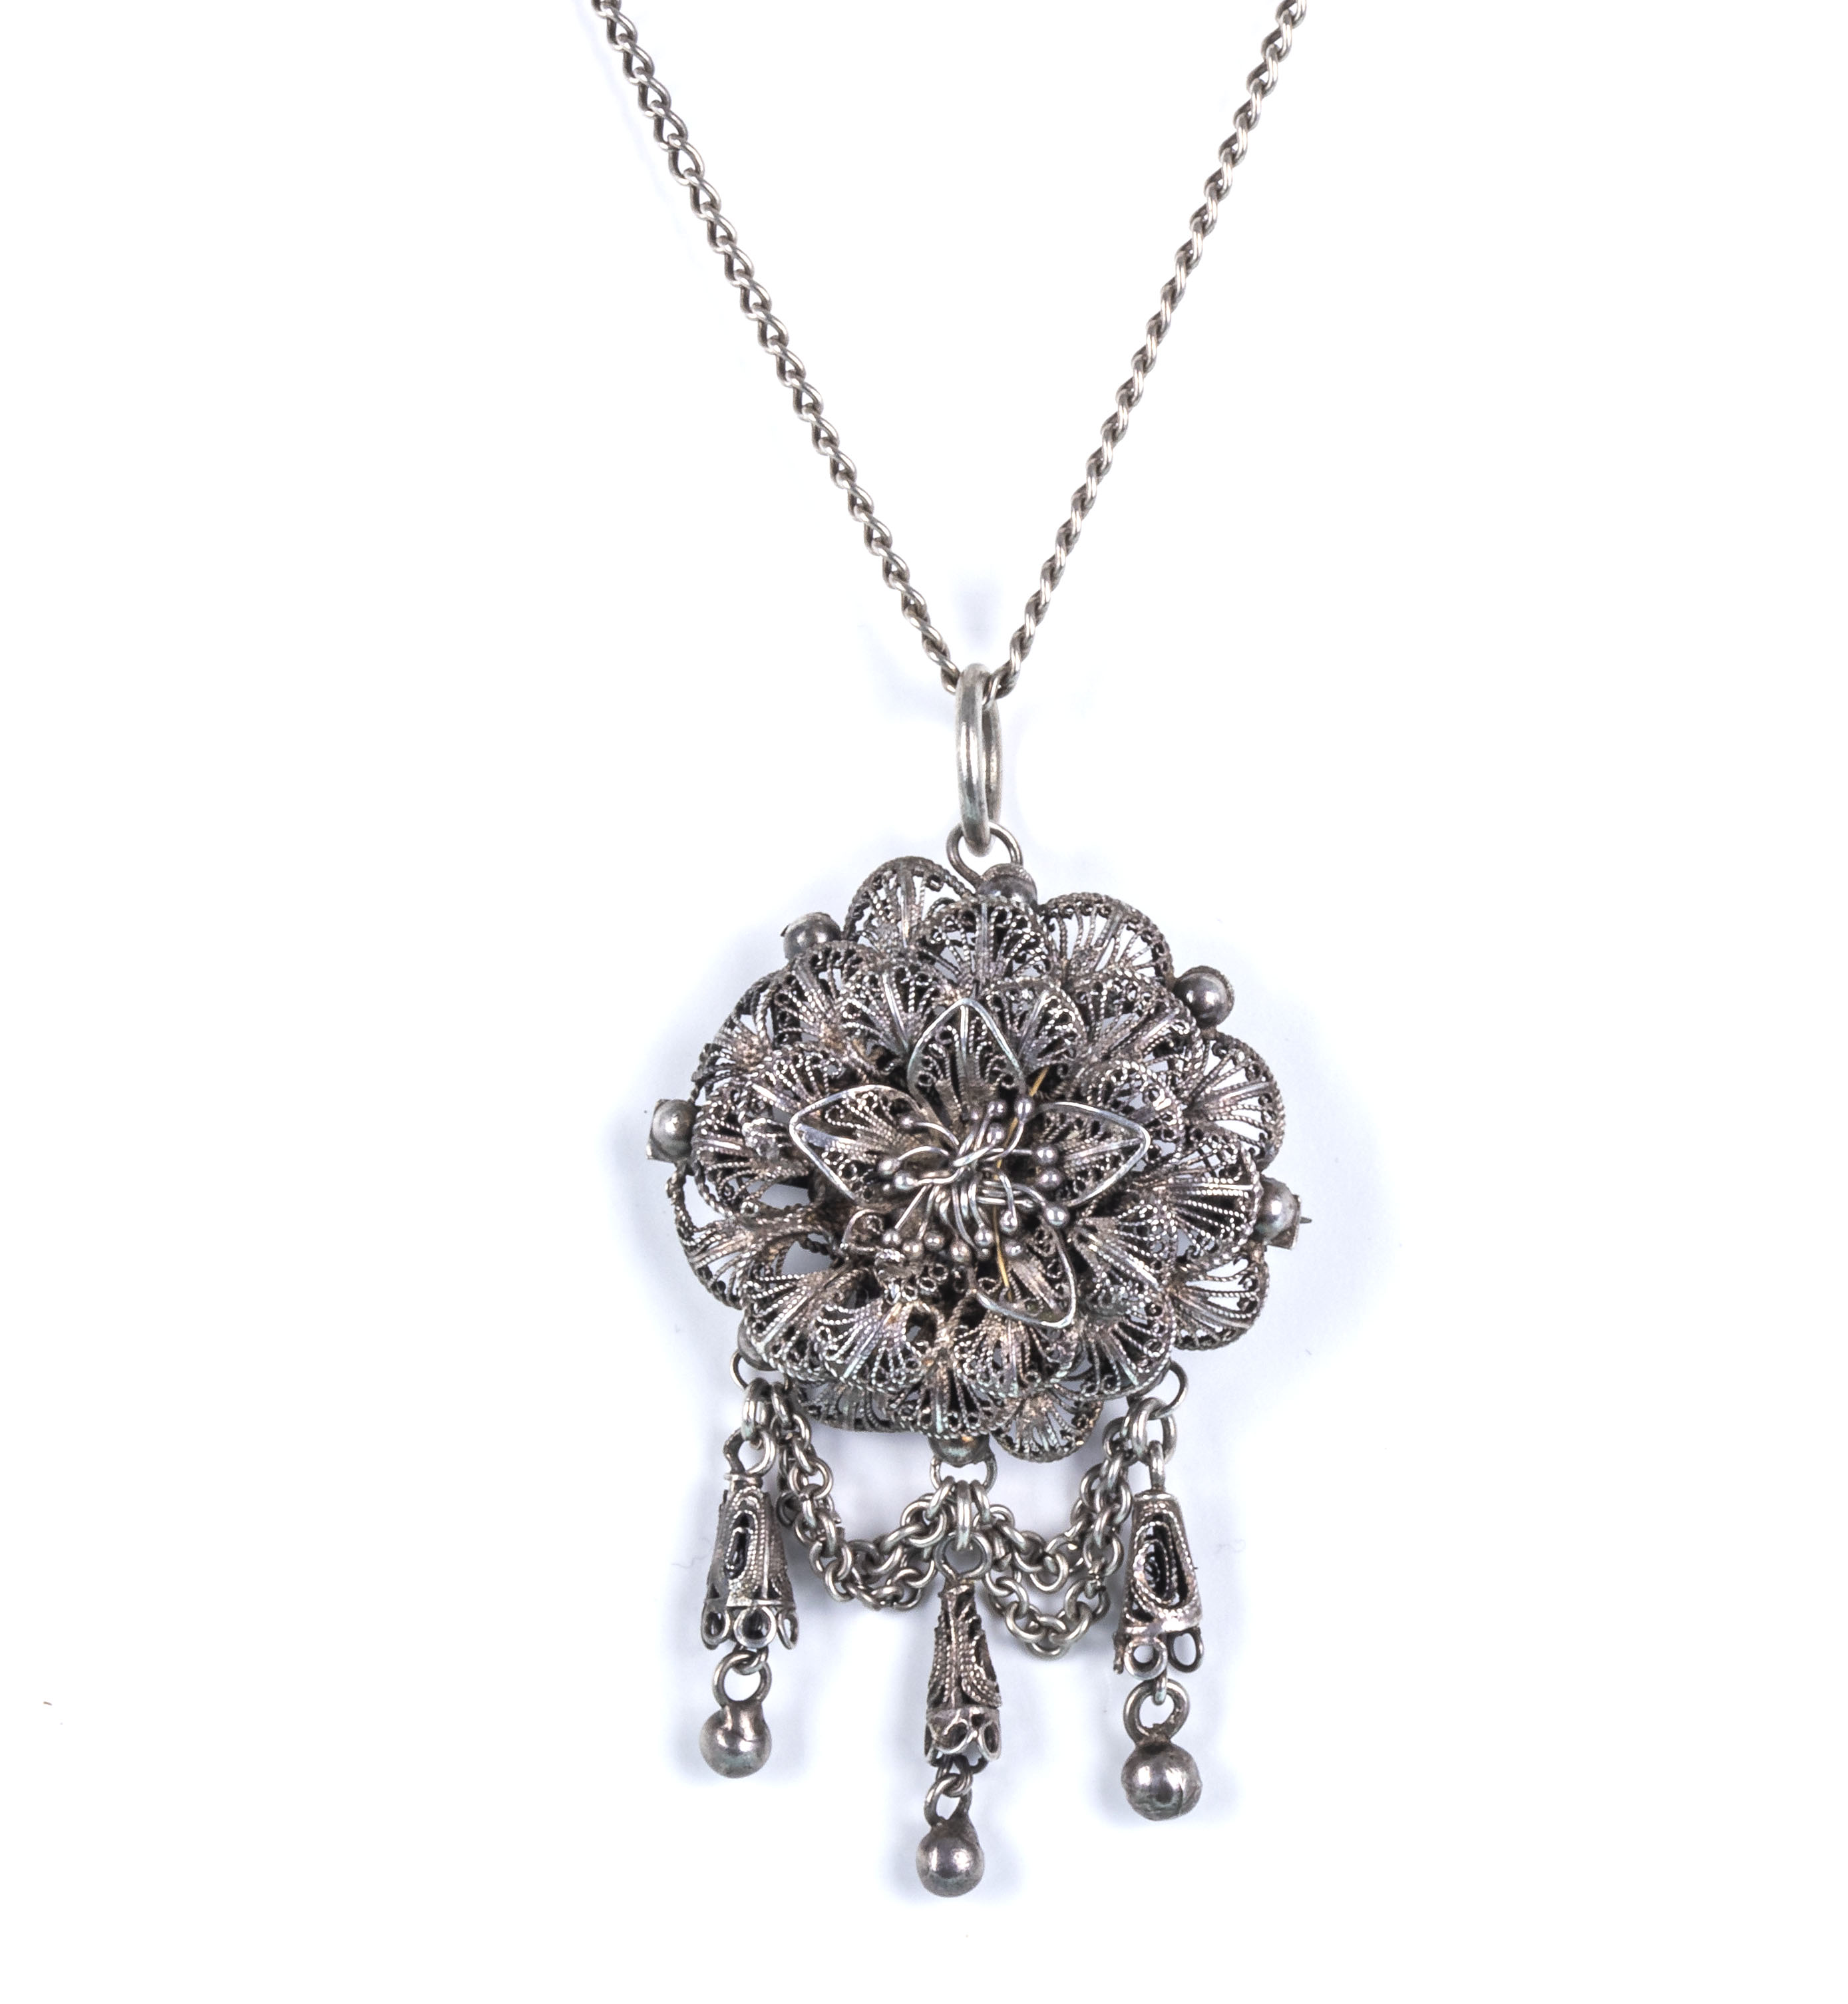 A silver brooch/pendant and chain